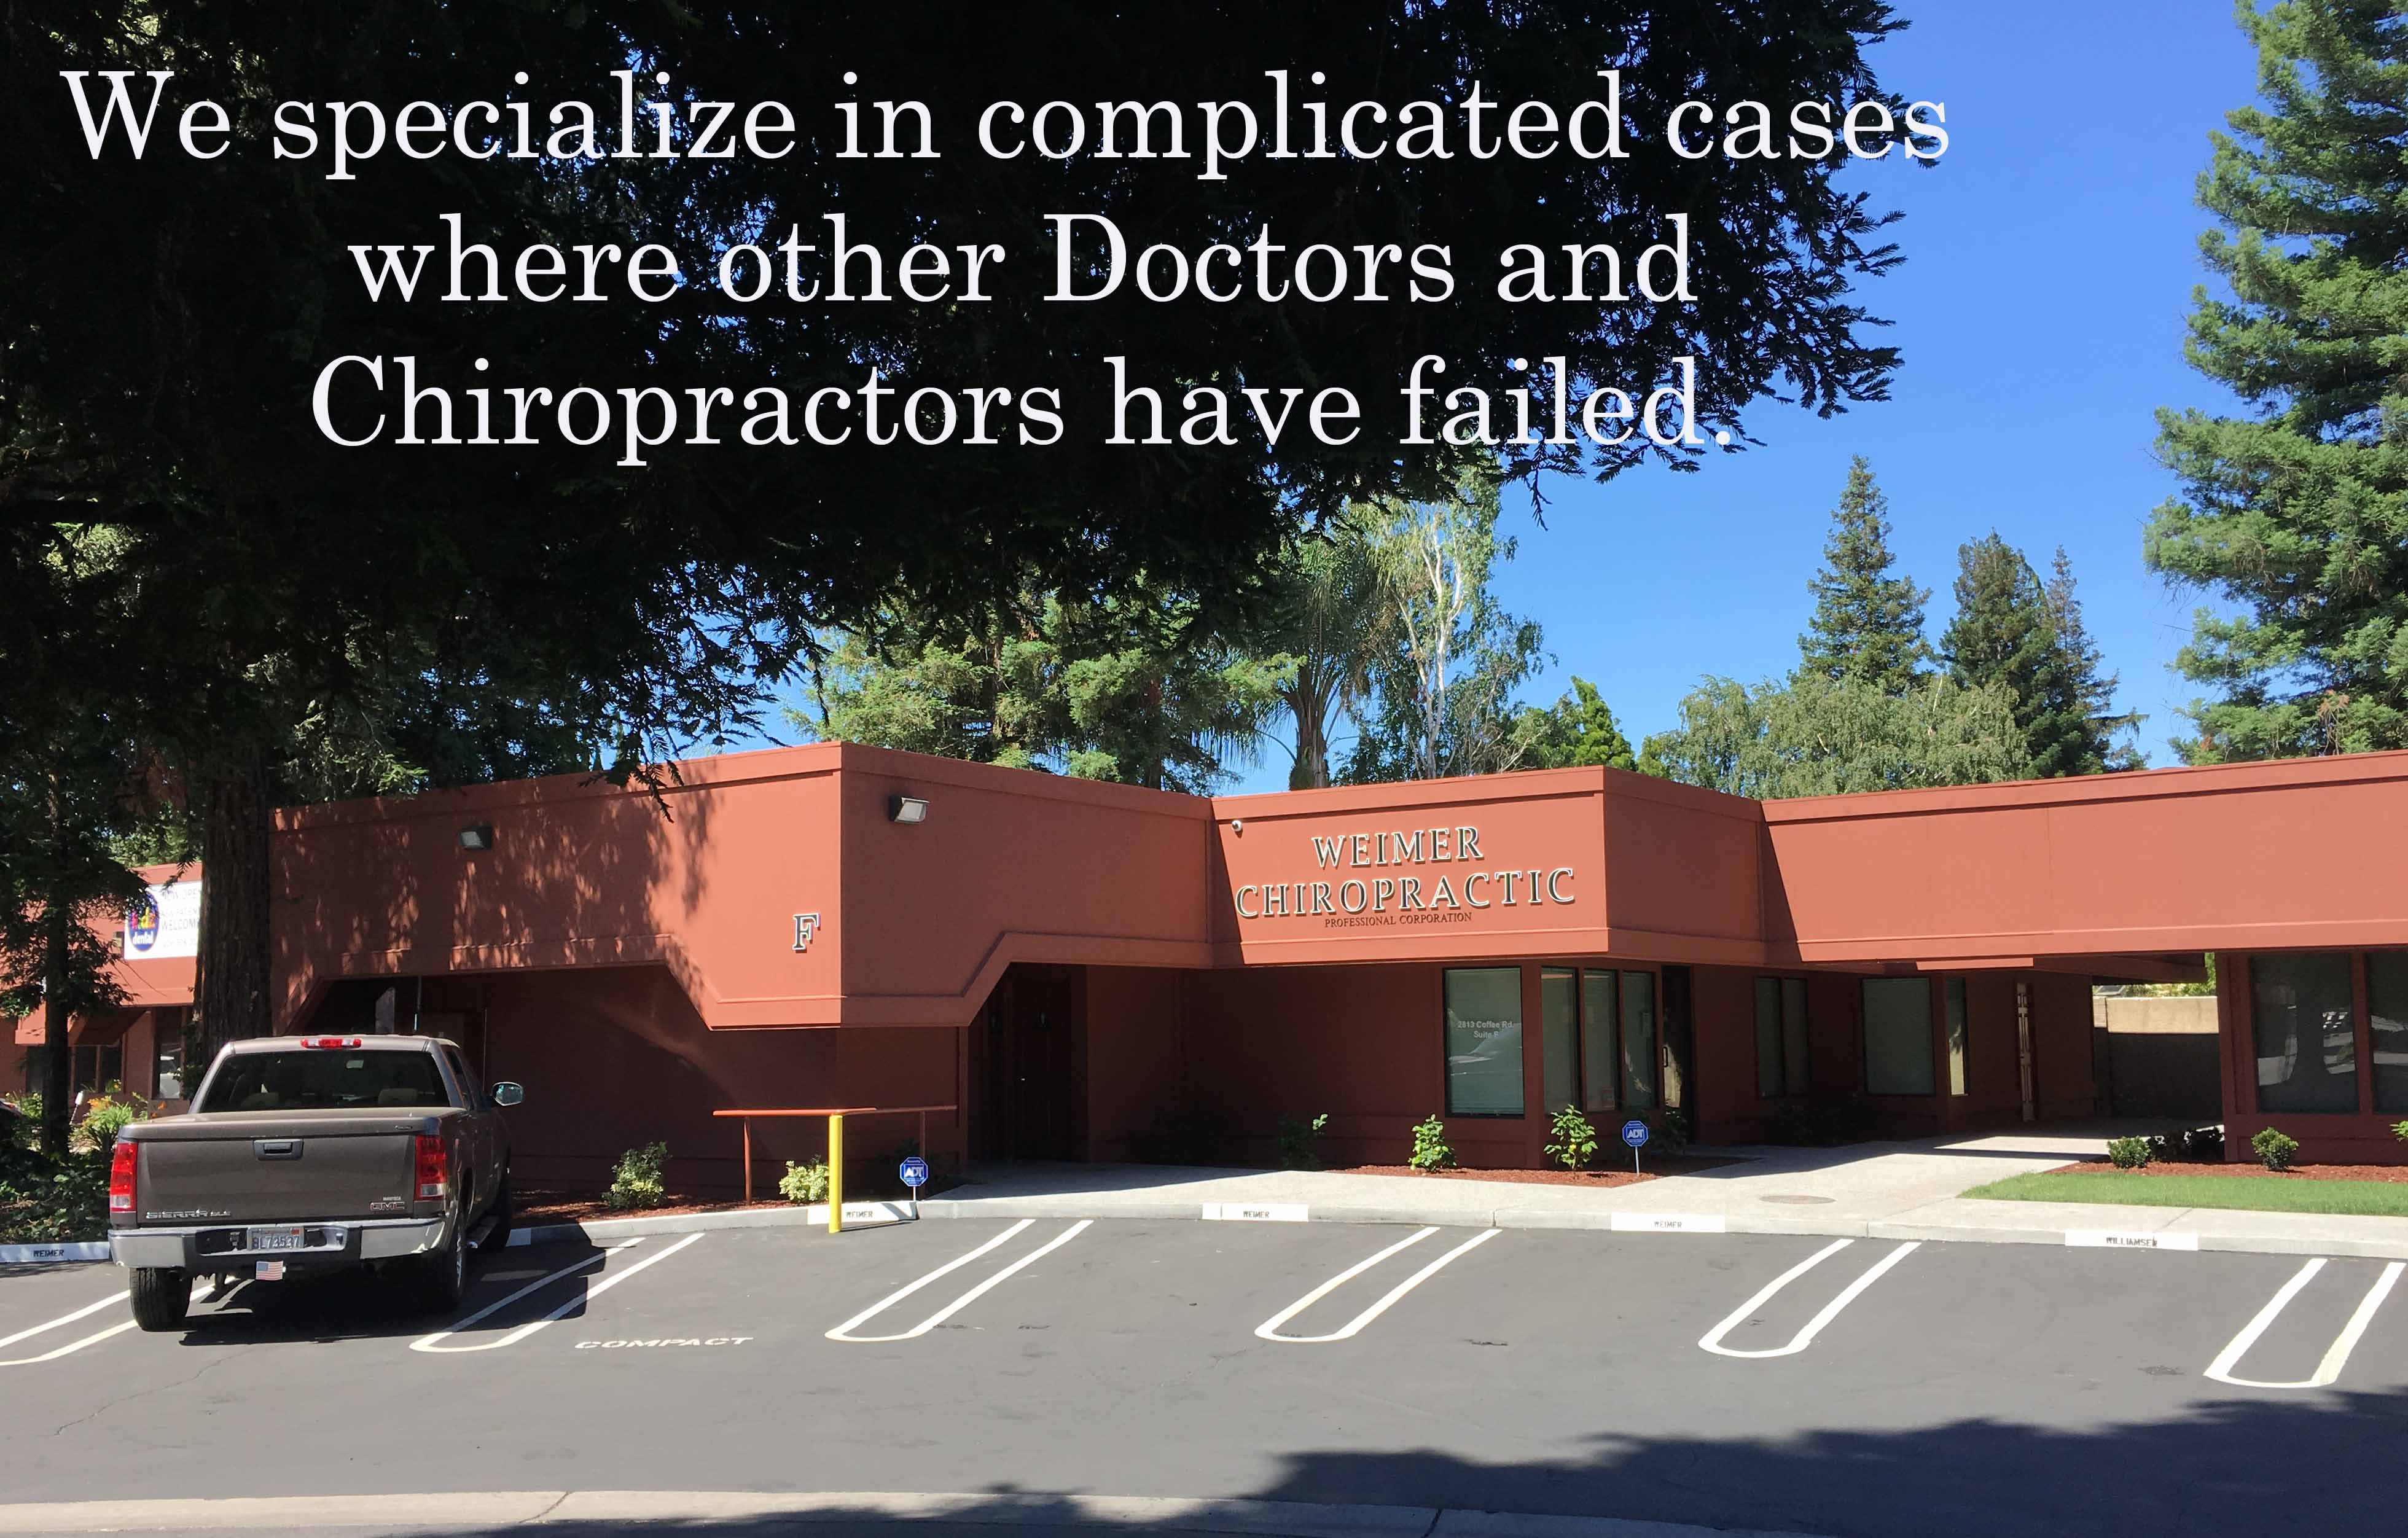 Our reviews often say Dr. Weimer is successful when others MD's and Chiropractors have failed.